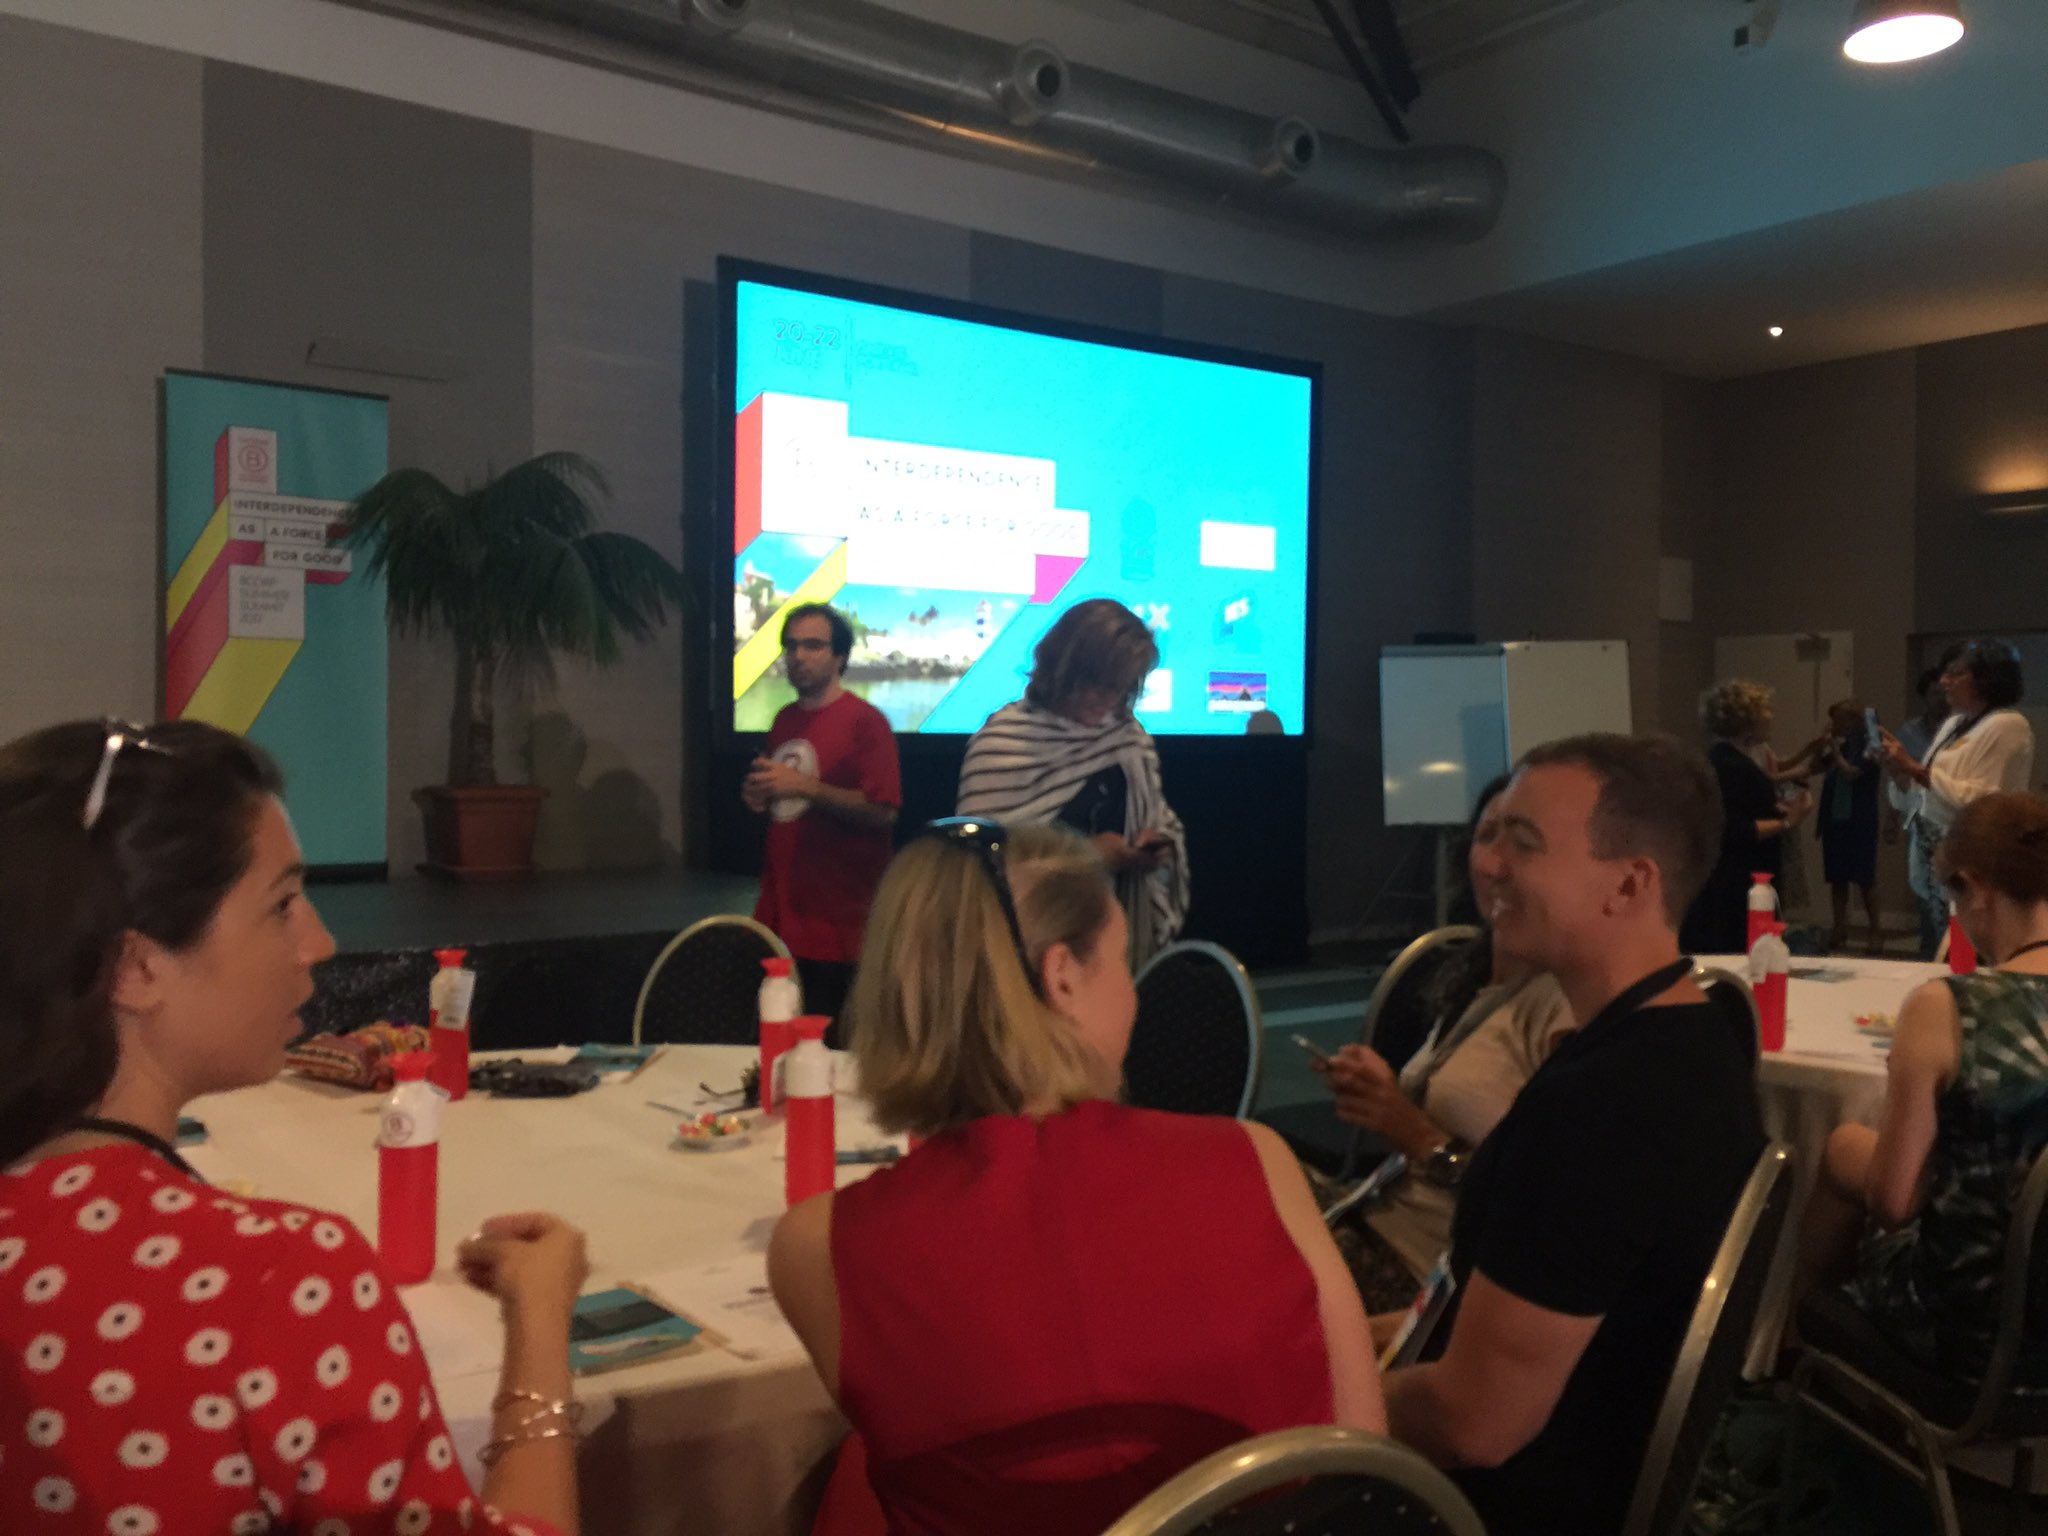 Just about to begin #BCORPSUMMIT 2 days of work & fun @BCorpSpain @BCorpEurope https://t.co/U3Nivcp885